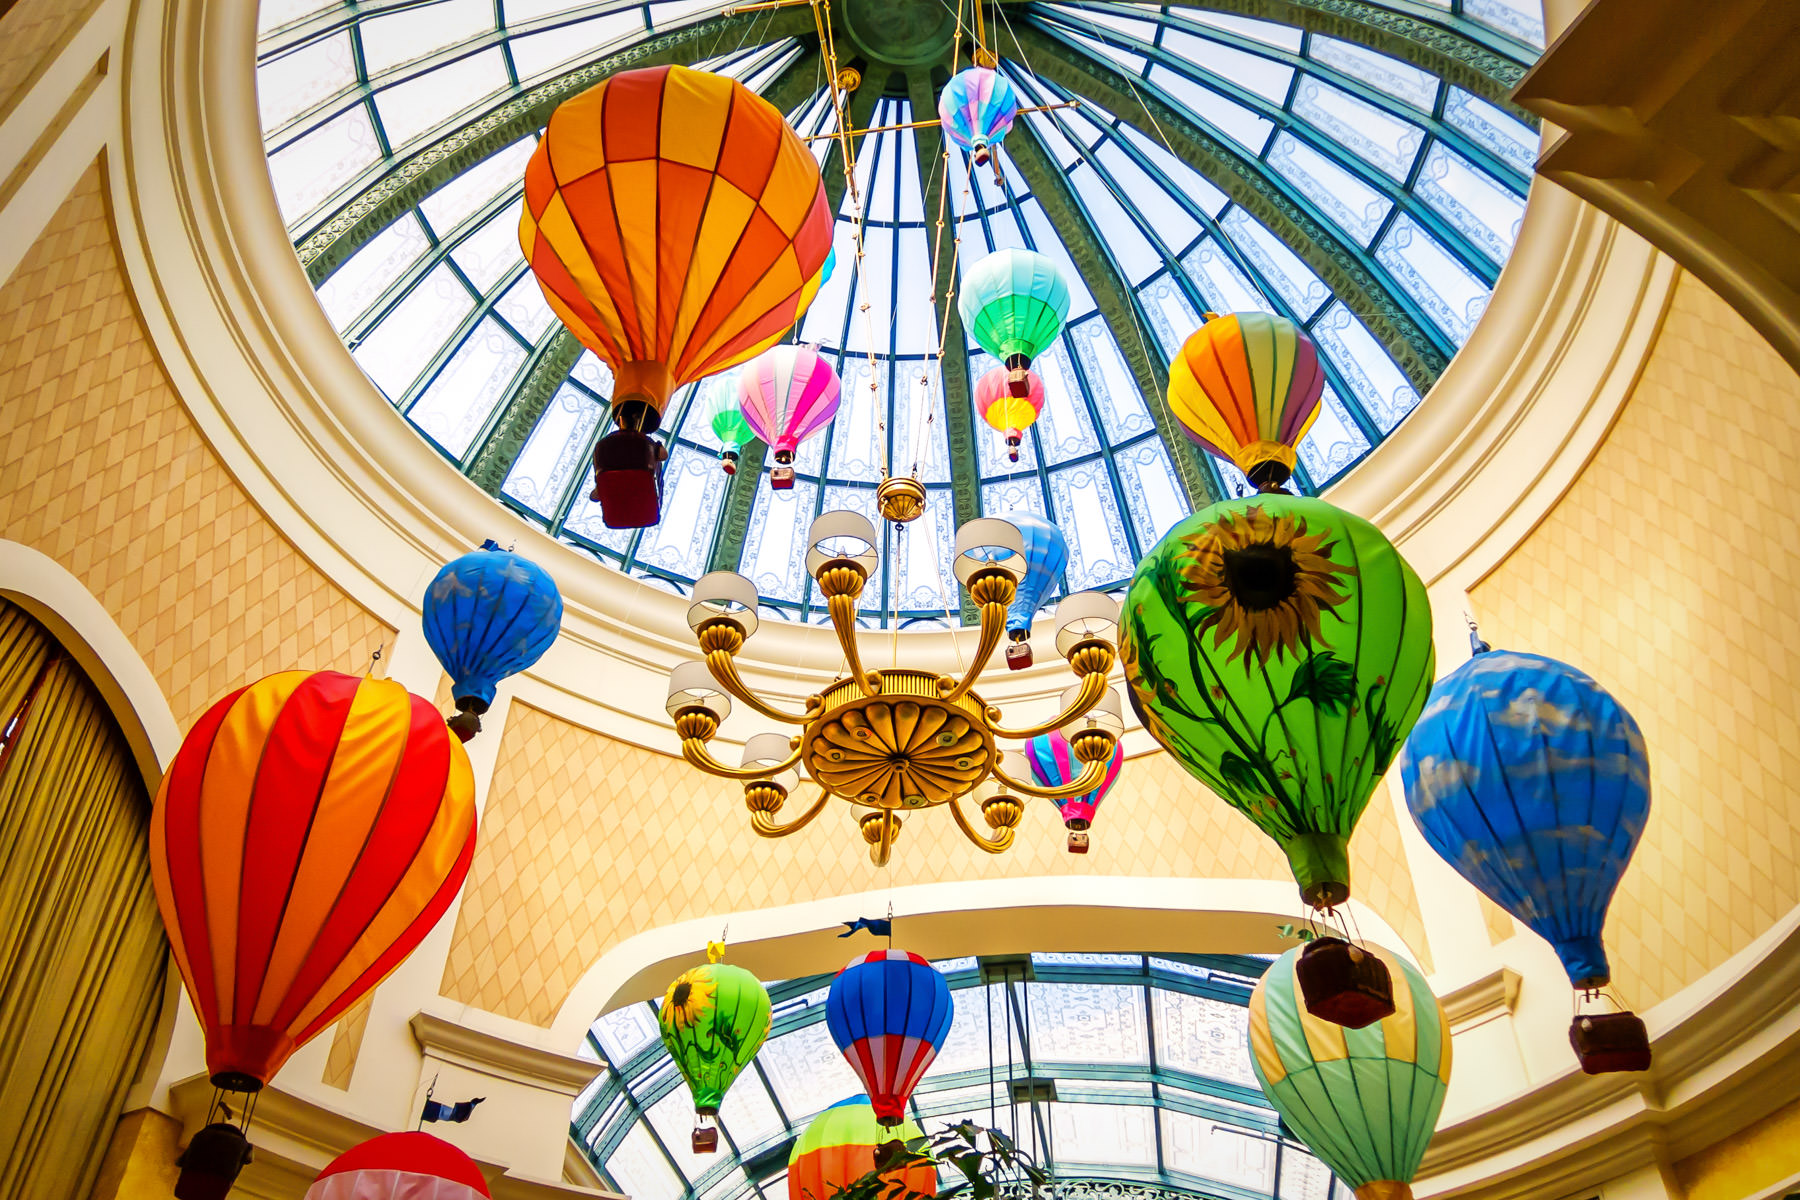 Decorative balloons hang from an atrium's roof in the Bellagio, Las Vegas.